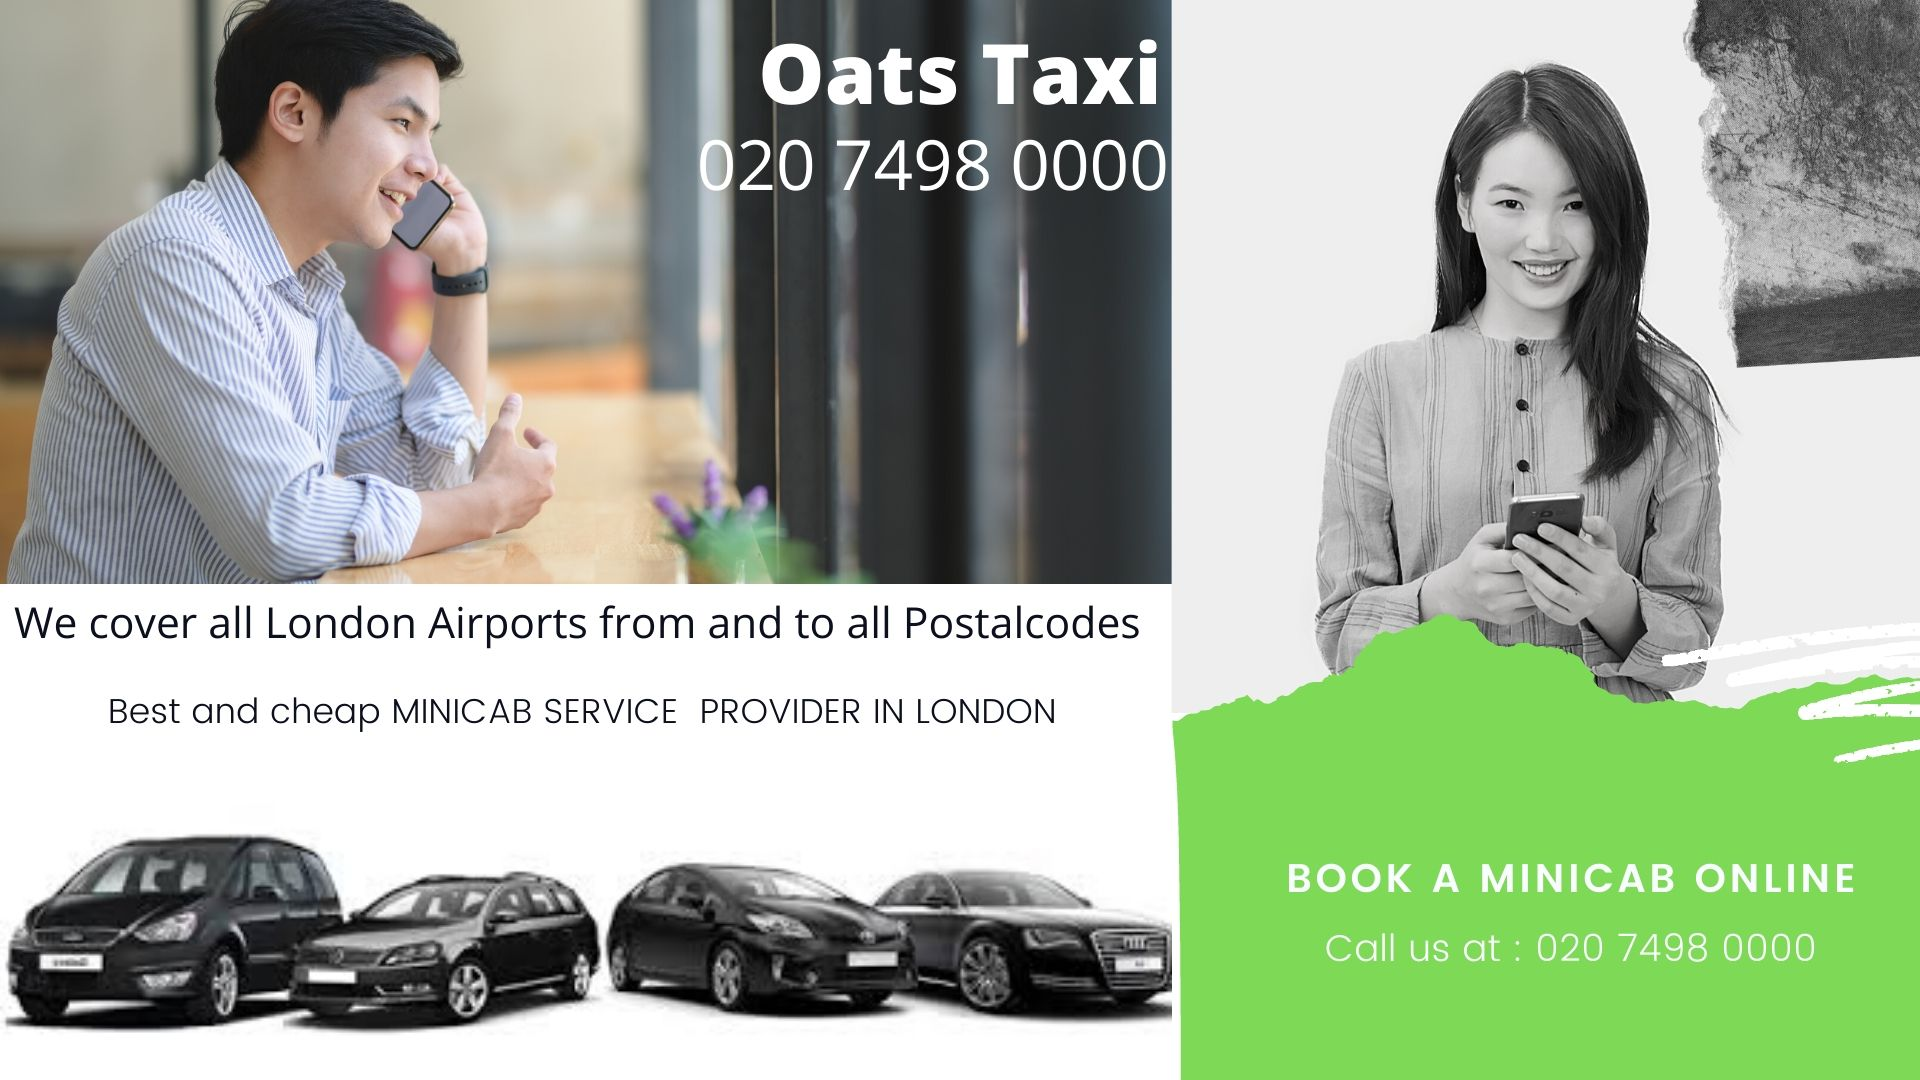 Nearest Taxi Office in Brentford | Nearest Taxi Office in Gatwick Airport | Call now : 02074980000